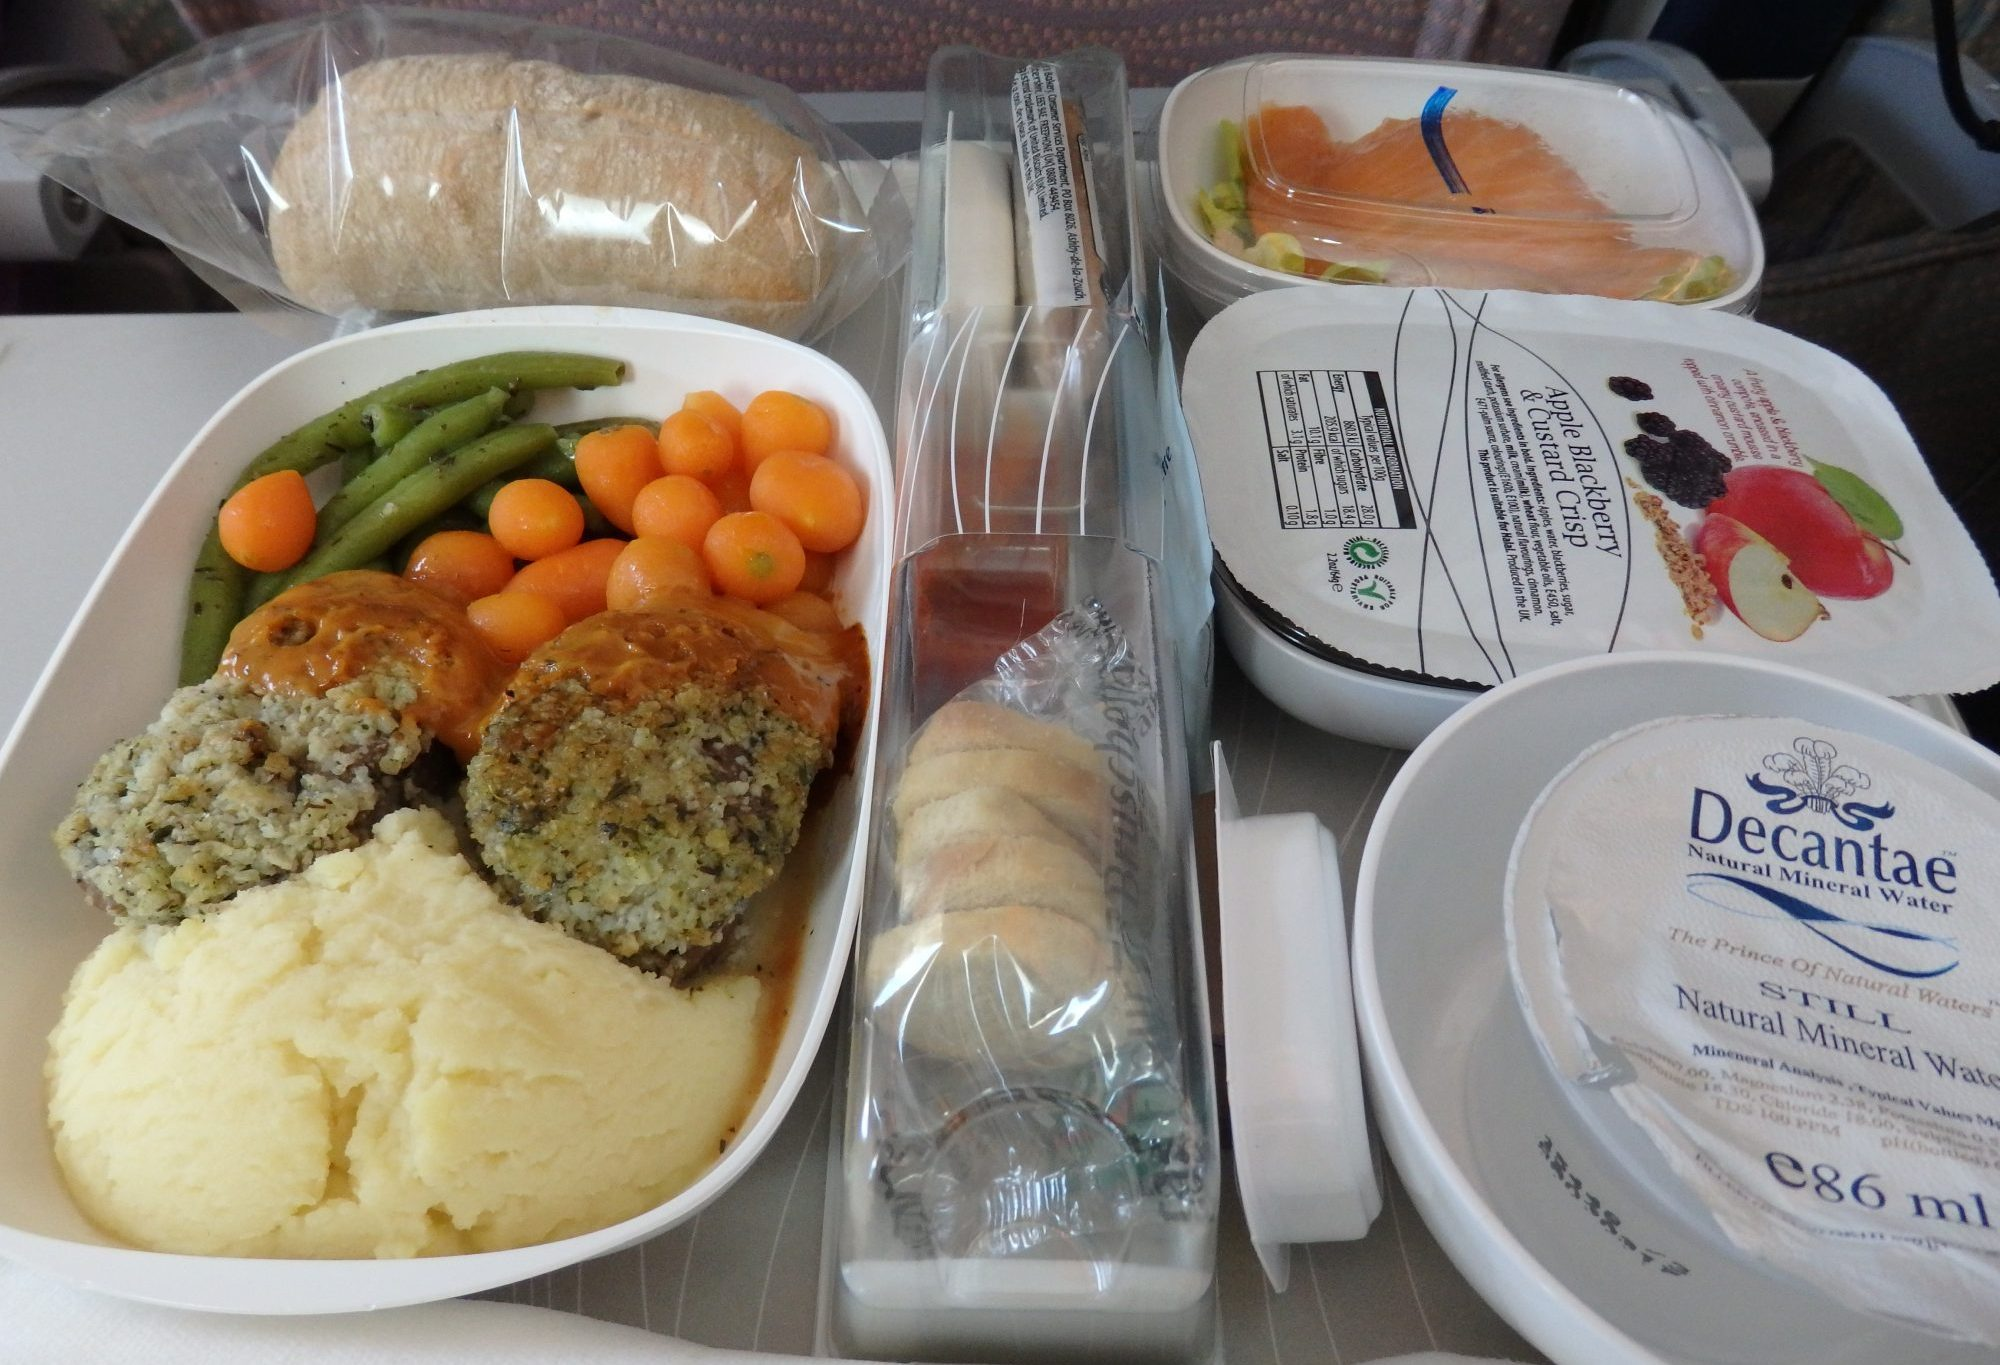 My dinner on an Emirates A380 flight. The box in the center contains snacks for later.